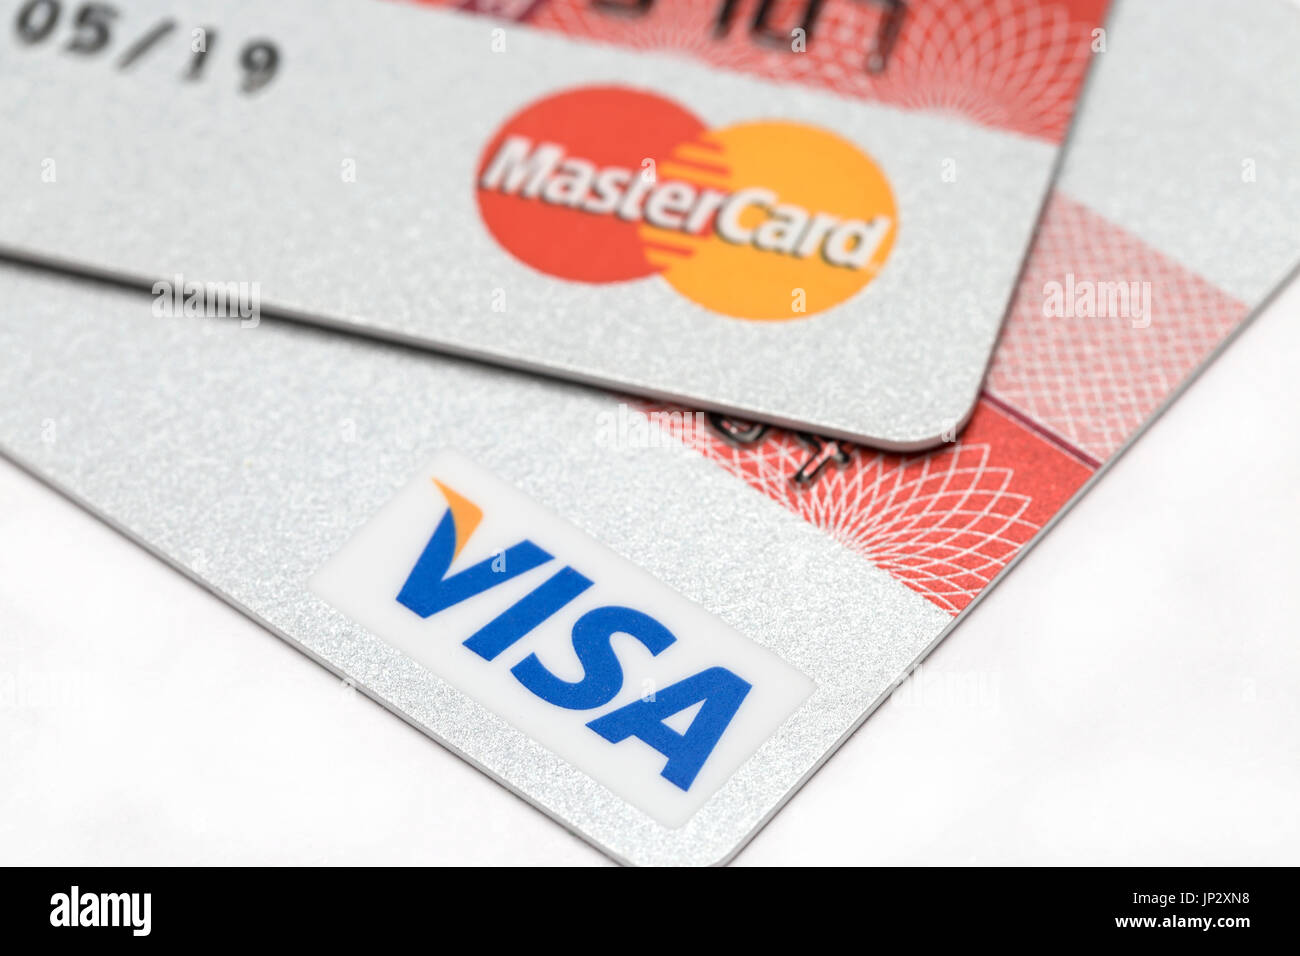 how to know if credit card is visa or mastercard